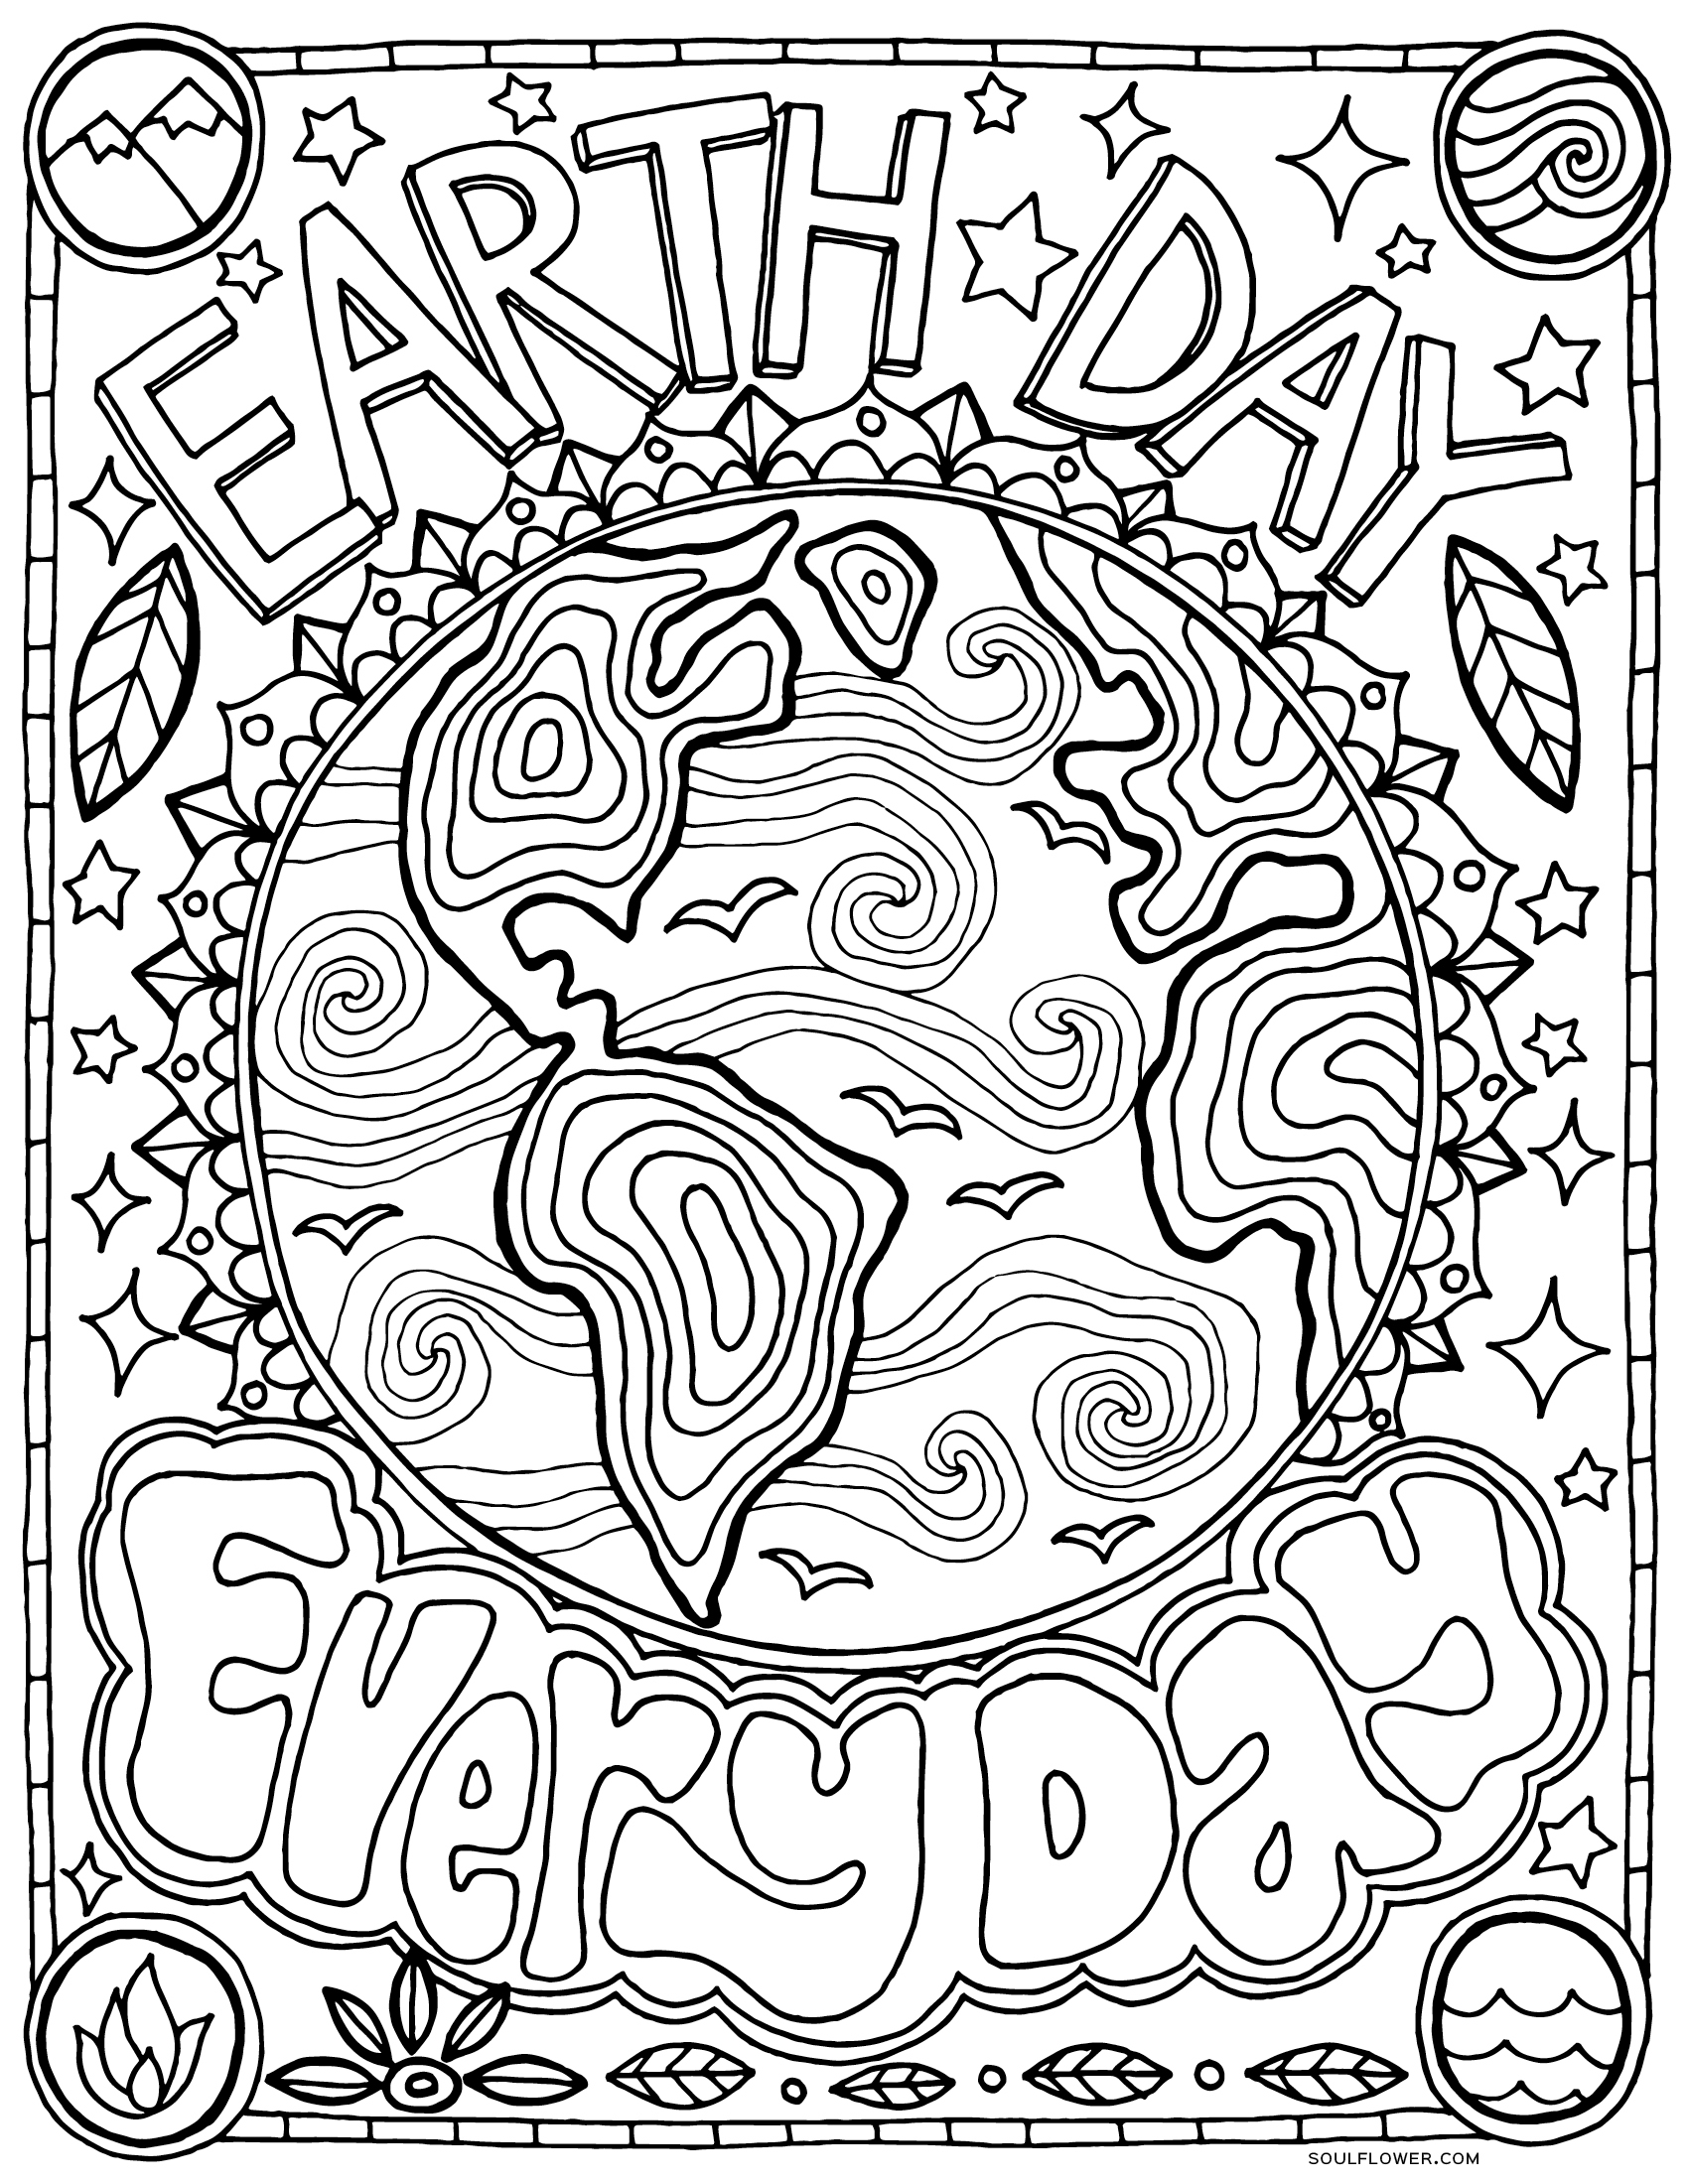 Free Earth Day Coloring Page Earth Day Every Day